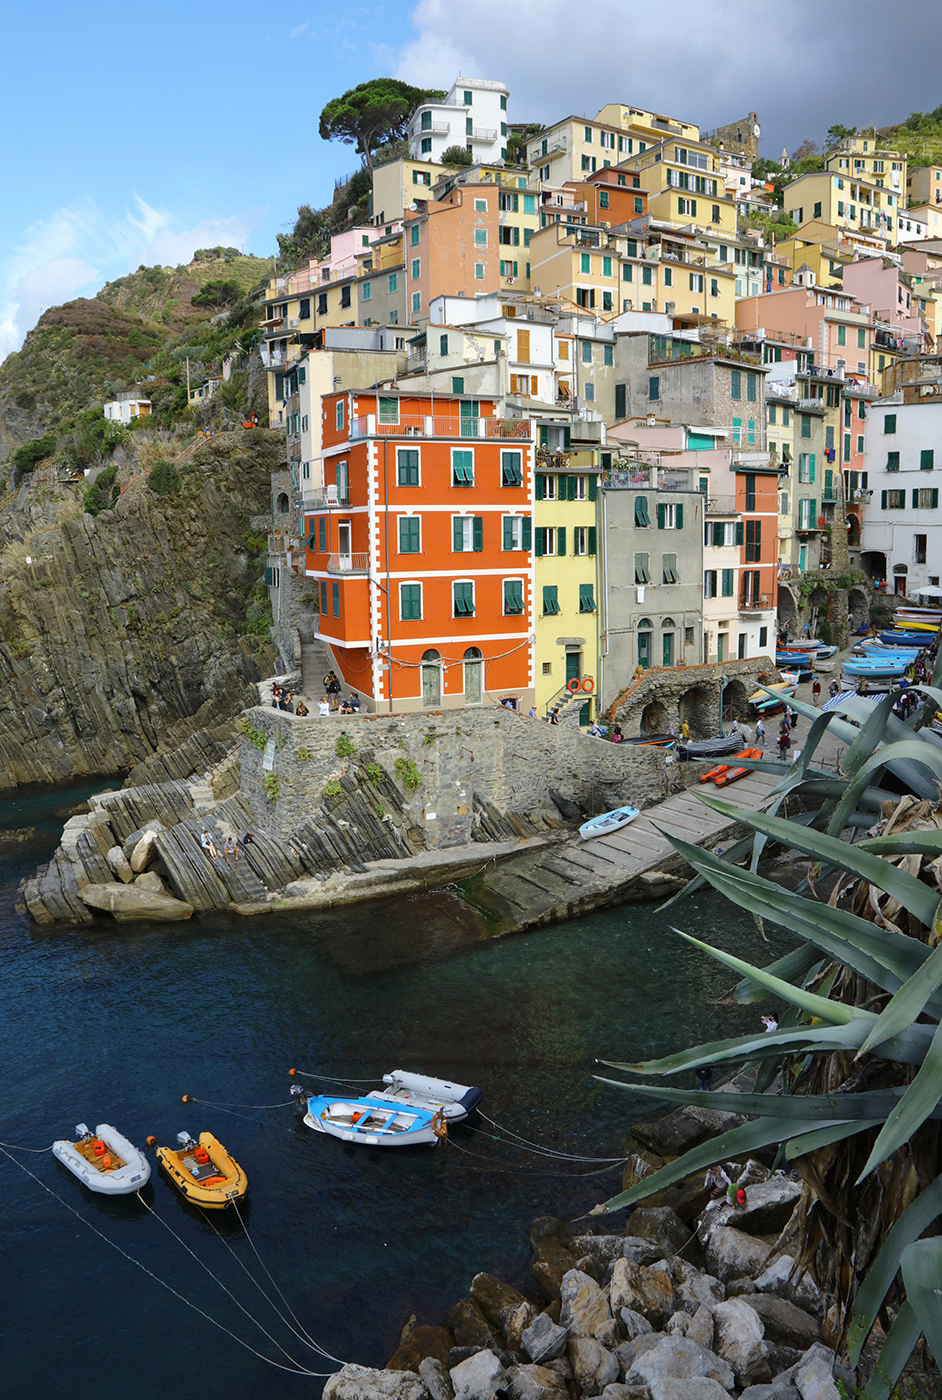 The Harbor in Riomaggiore